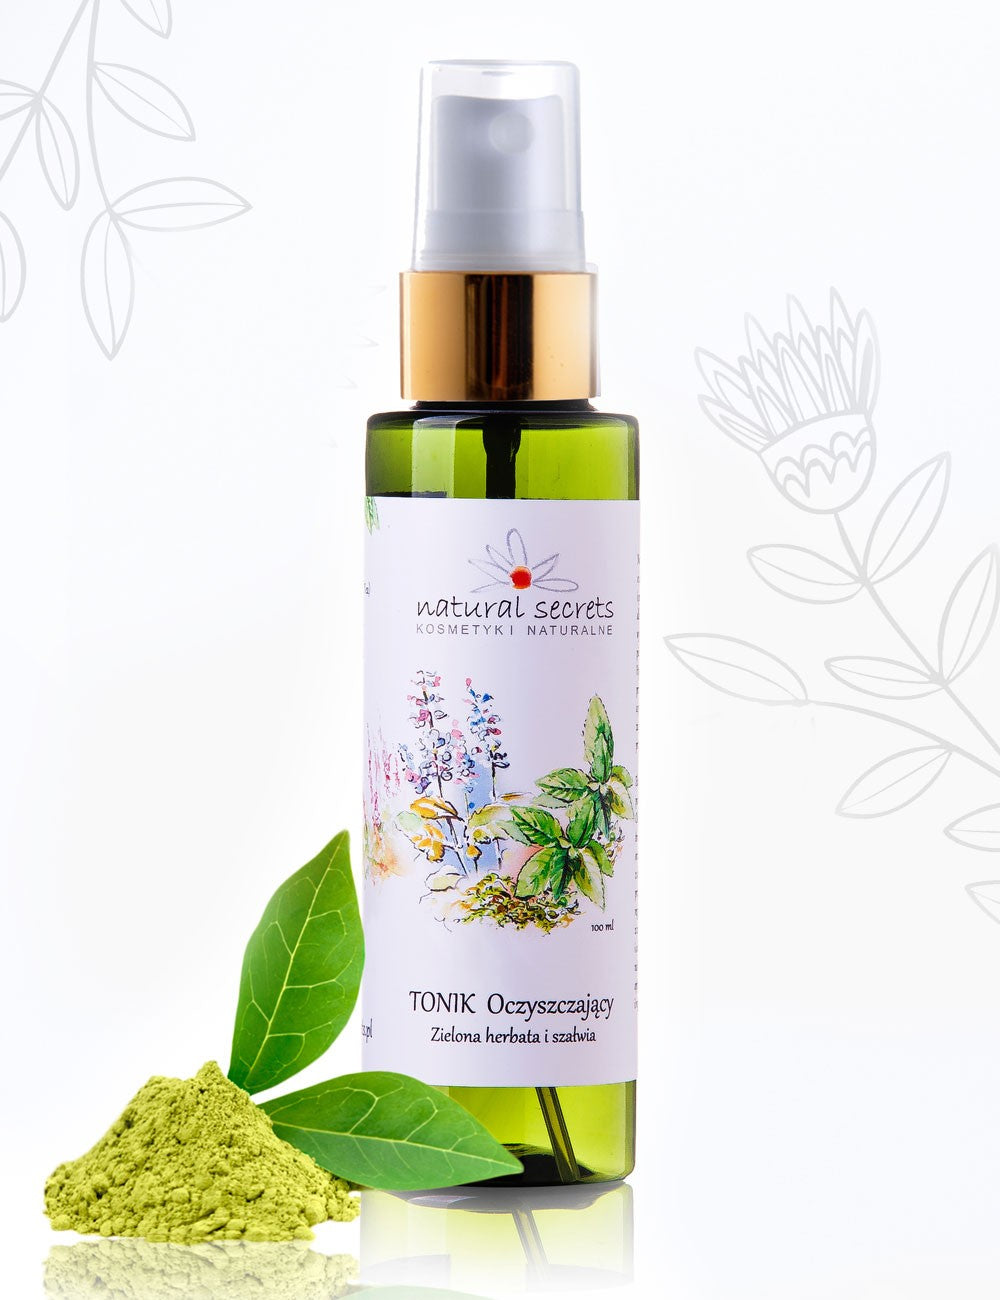 Natural Secrets Cleansing Toner - Green Tea & Sage.